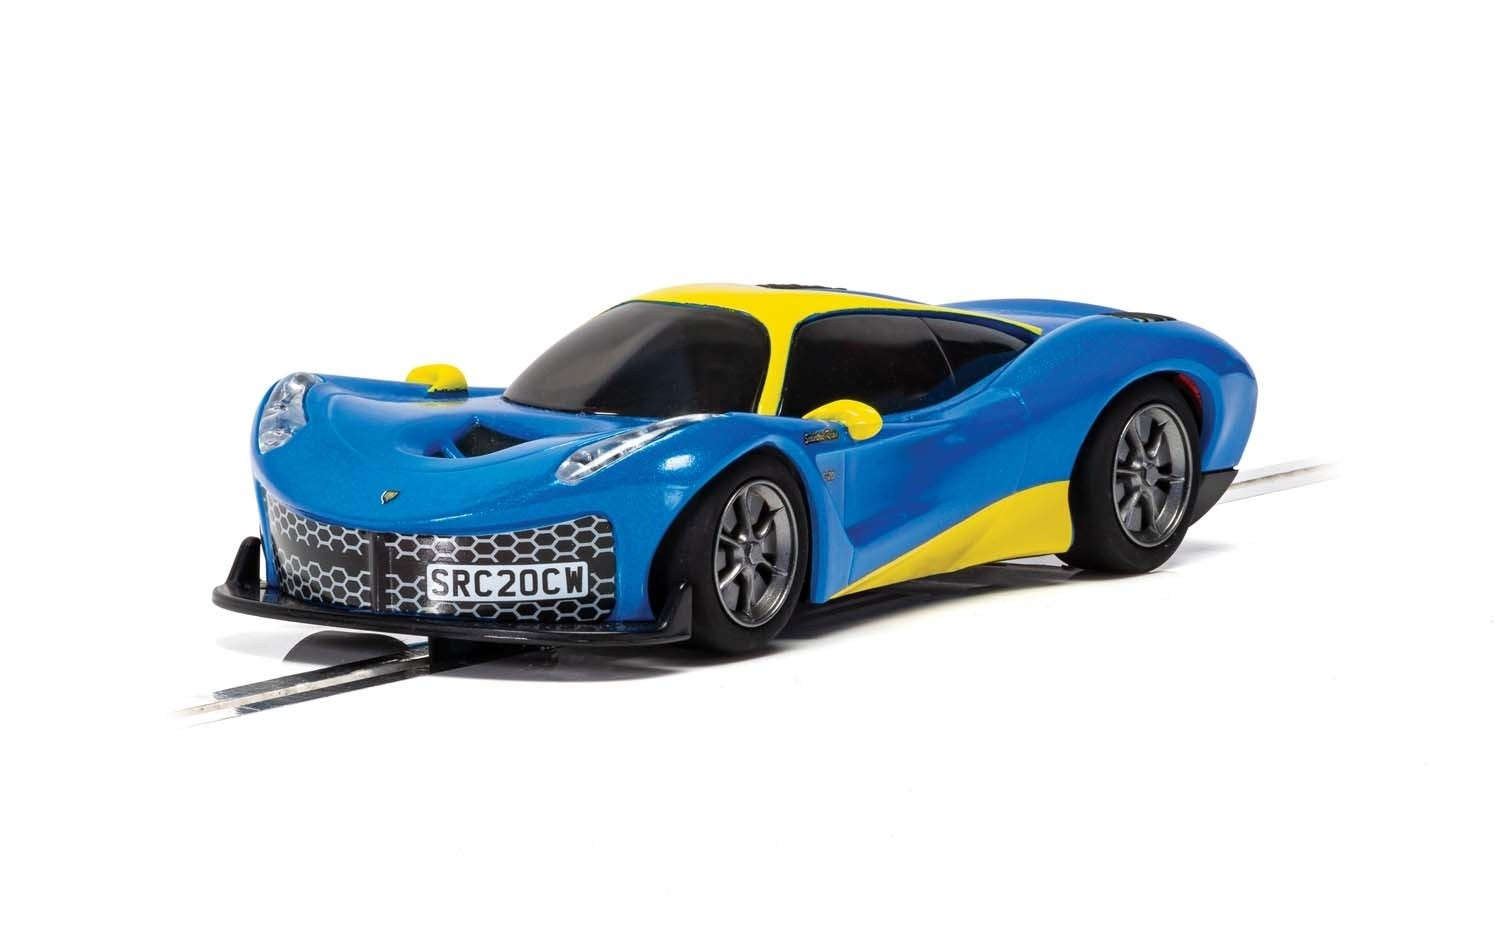 C4141 Scalextric Scalextric Rasio C20, Metallic Blue